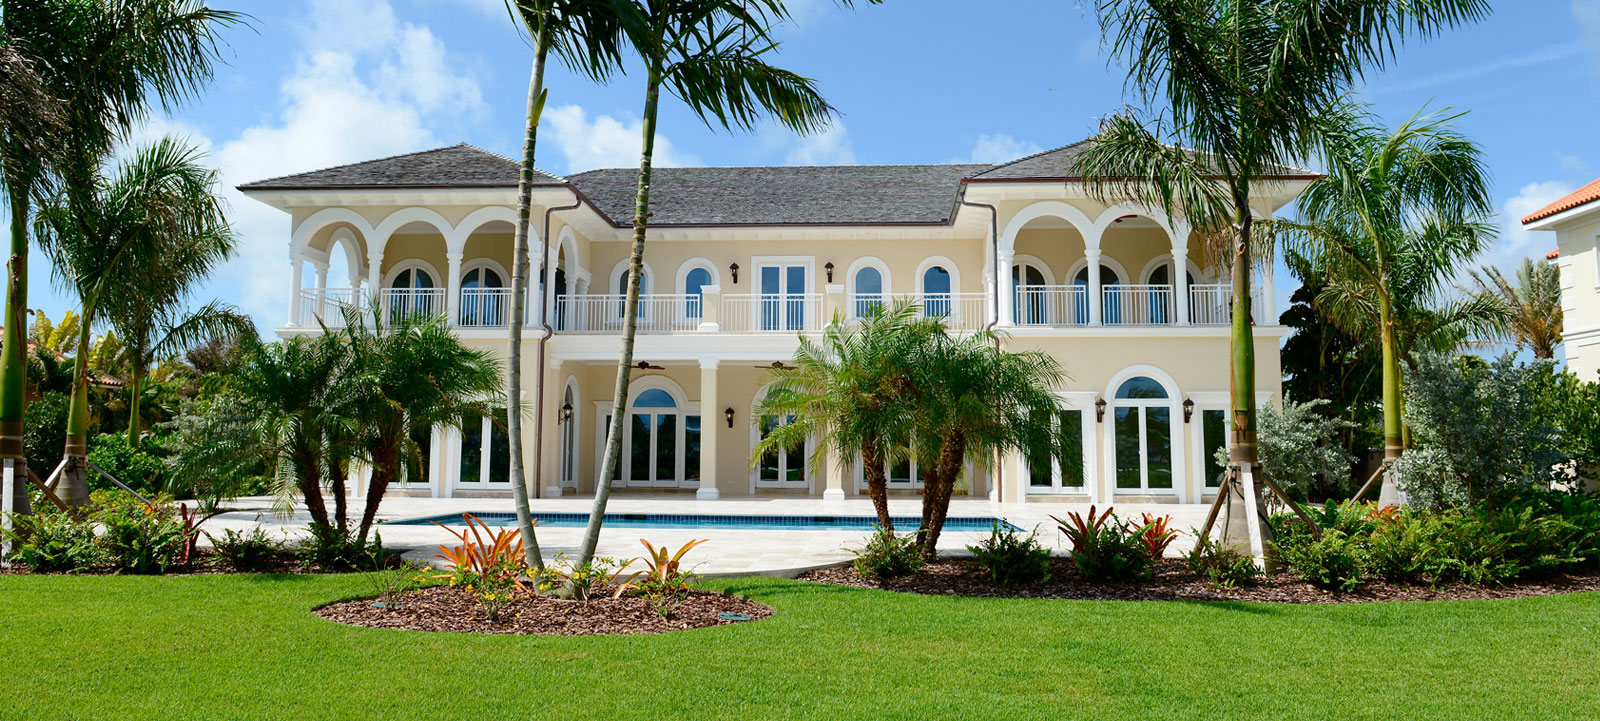 luxury real estate in the bahamas real estate  homes  investment property